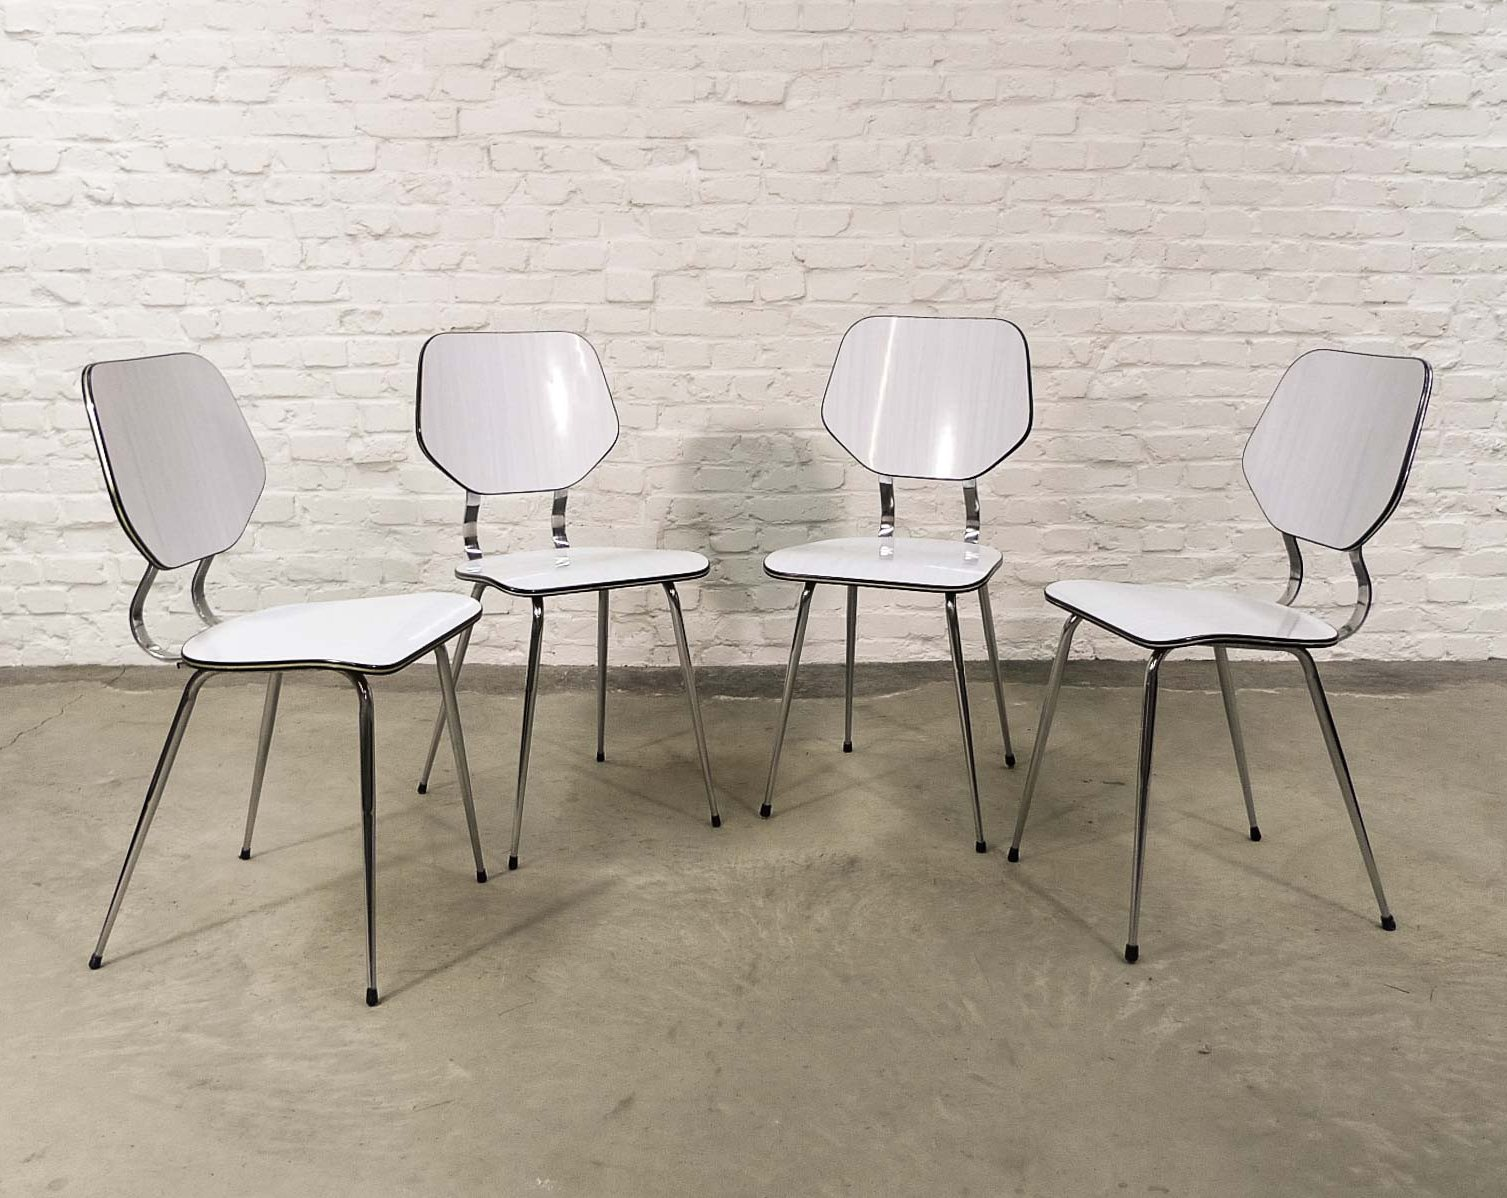 Set of 5 Vintage Design High Quality Brabantia Kitchen Chairs, 5s